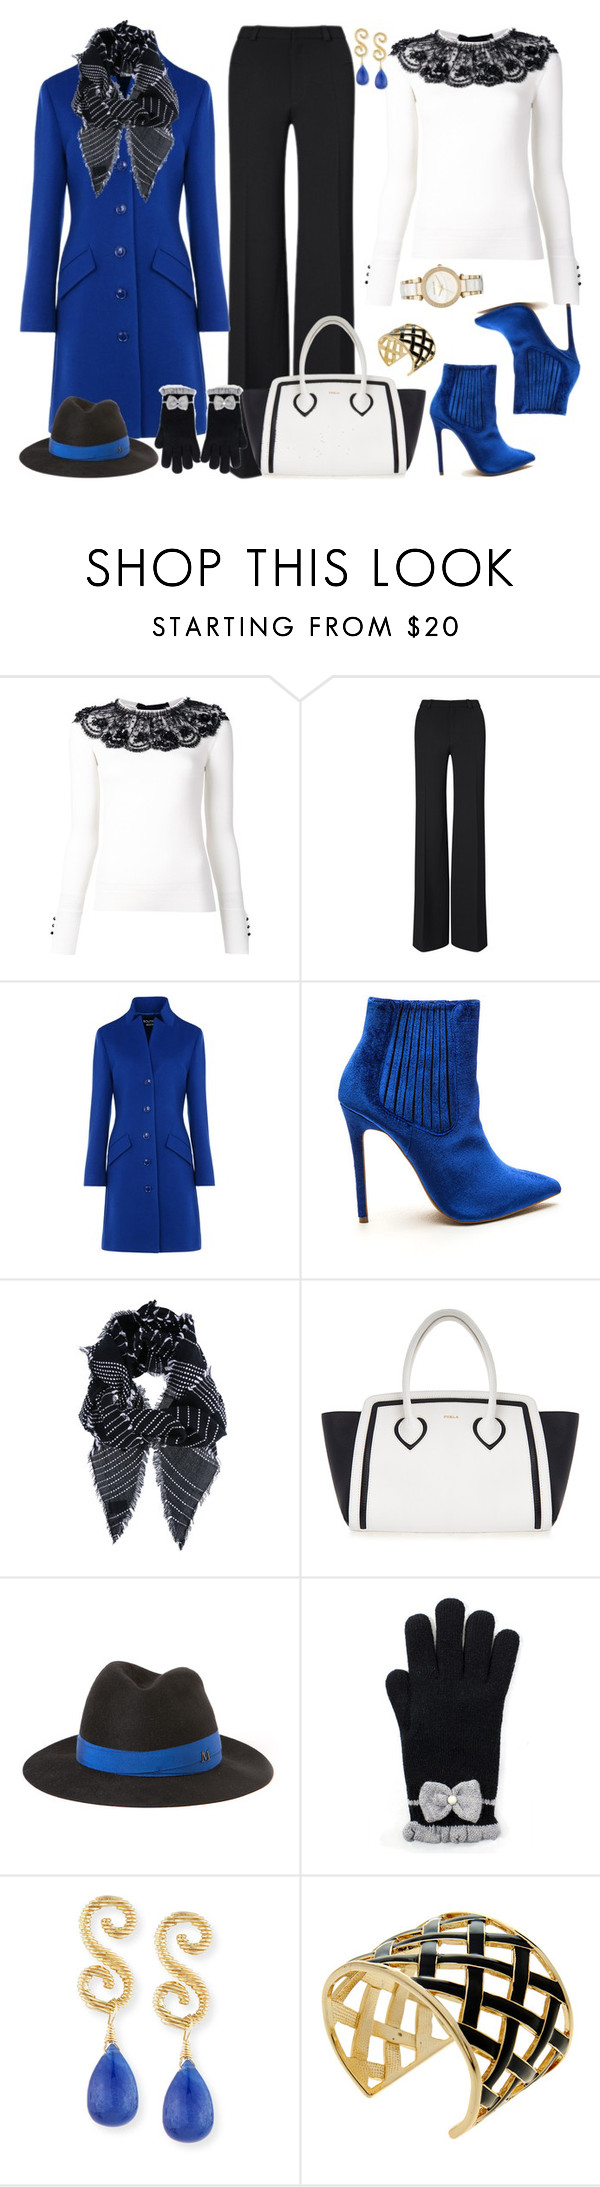 """Untitled #3185"" by emmafazekas ❤ liked on Polyvore featuring Oscar de la Renta, Roland Mouret, Boutique Moschino, Furla, Maison Michel, Splendid, Kenneth Jay Lane and Michael Kors"